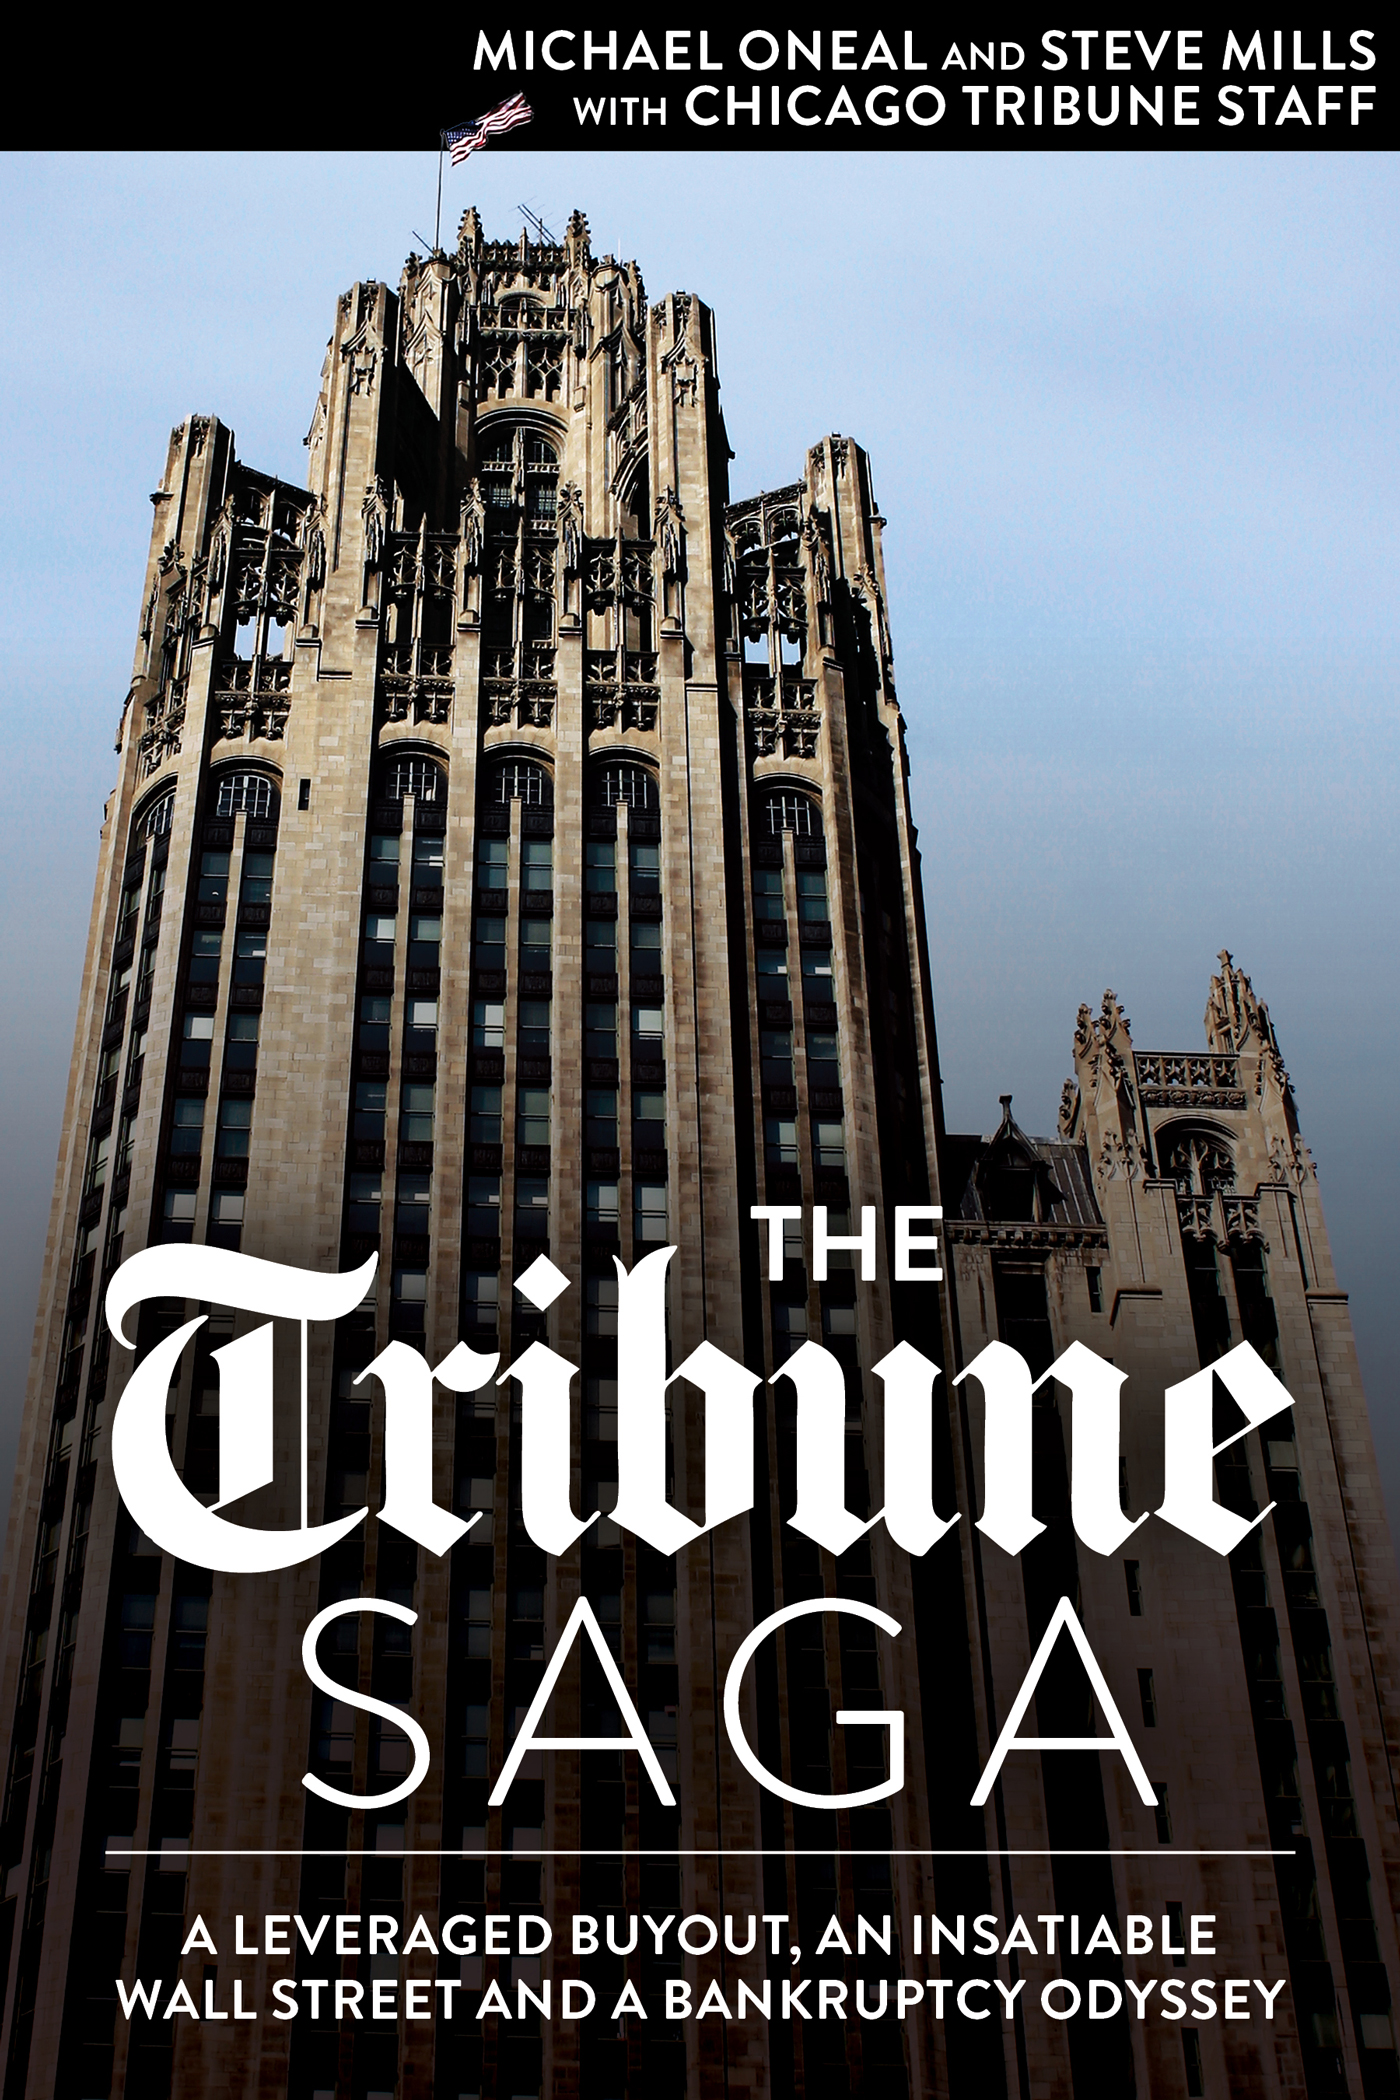 The Tribune Saga